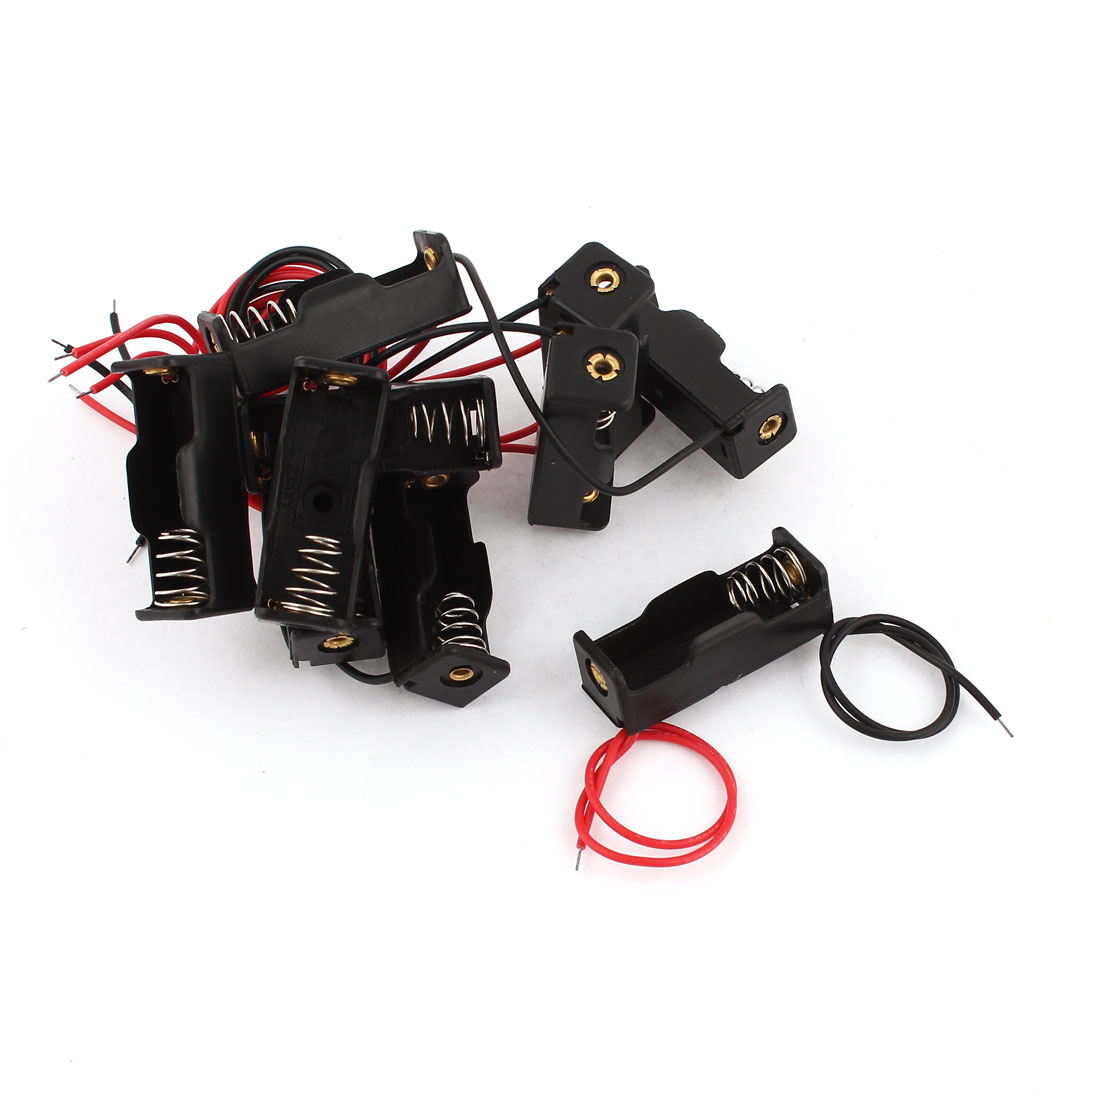 10Pcs 12V 23A Wire Leads Black Plastic Spring Clip Battery Holder